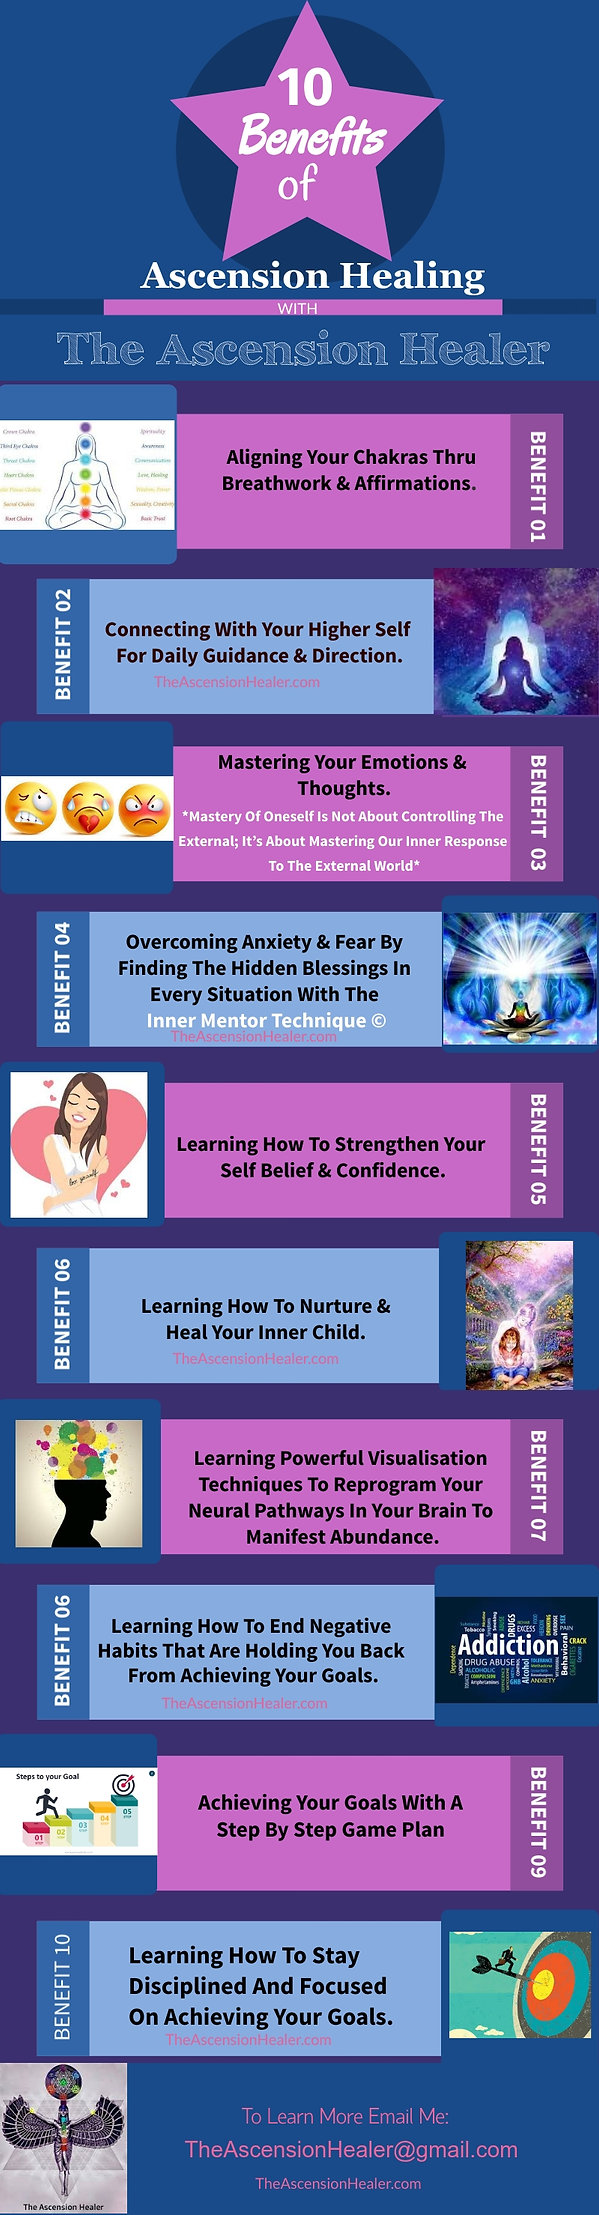 10 benefits of life coach ascension healing.jpg